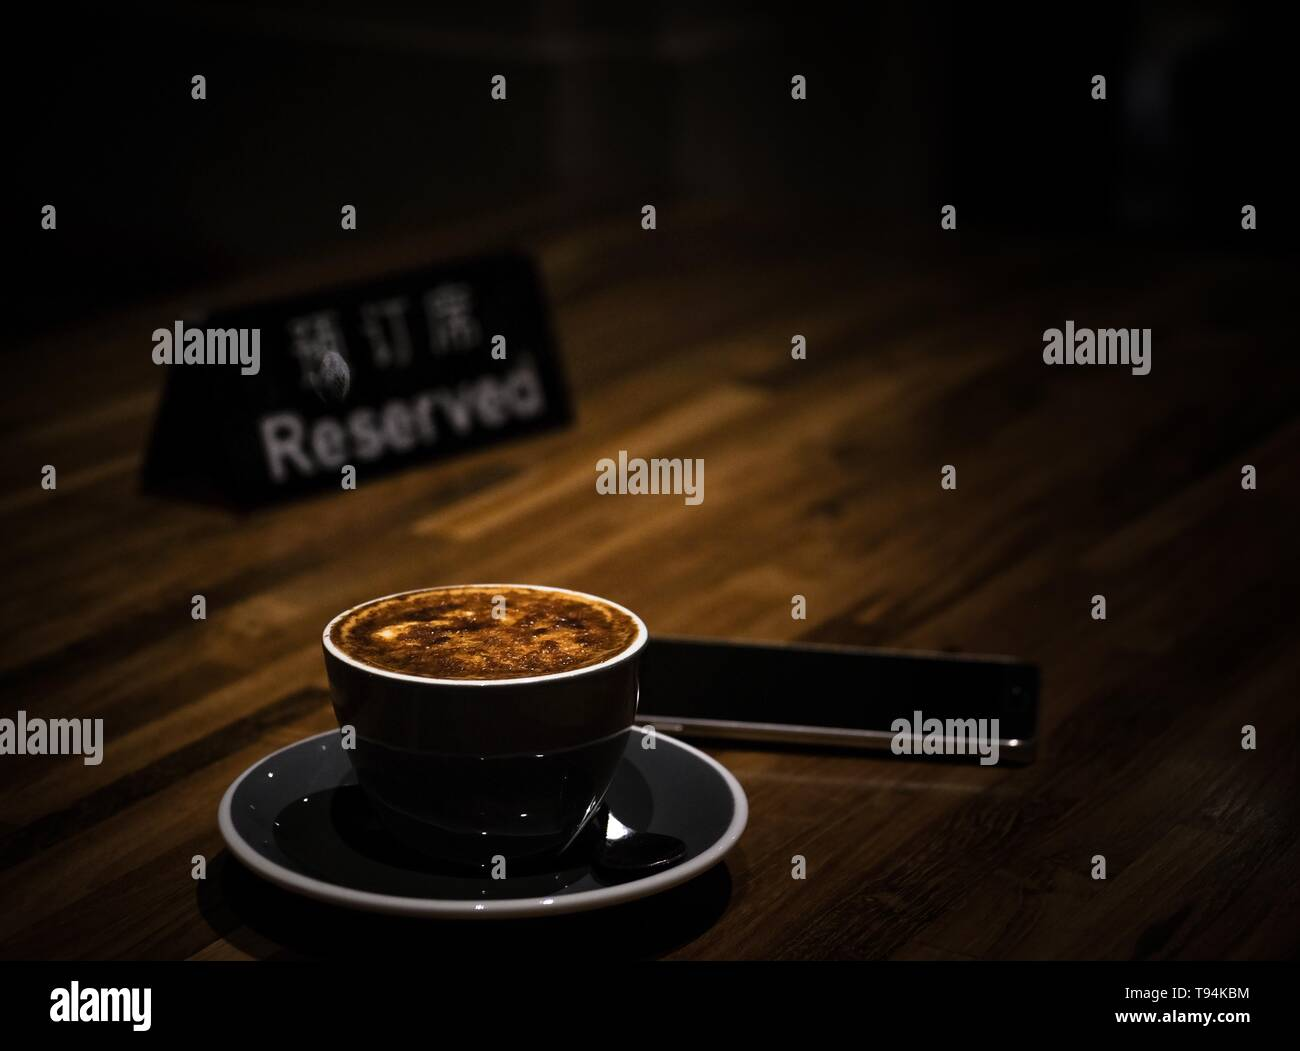 A cup of espresso with a phone and a sign 'Reserved' on a wooden surface  Translation: Reserved - Stock Image